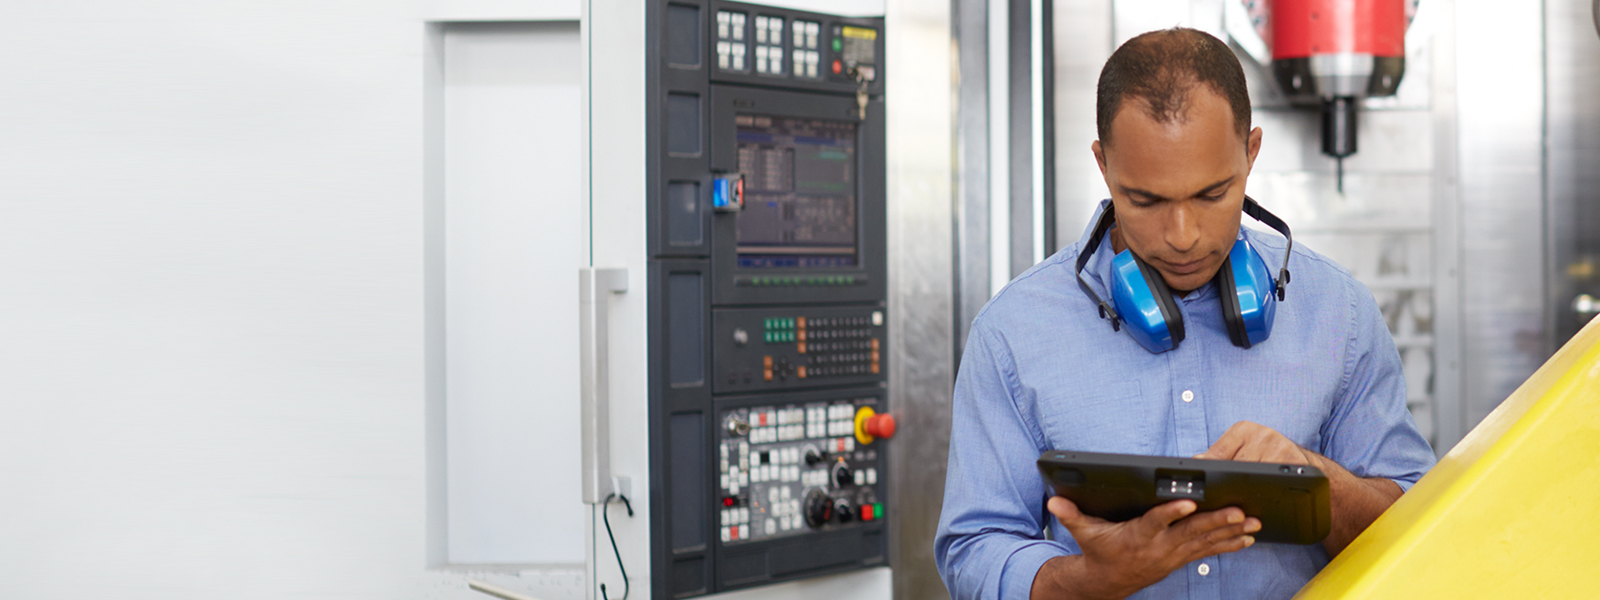 A man with protective headphones works on a tablet.